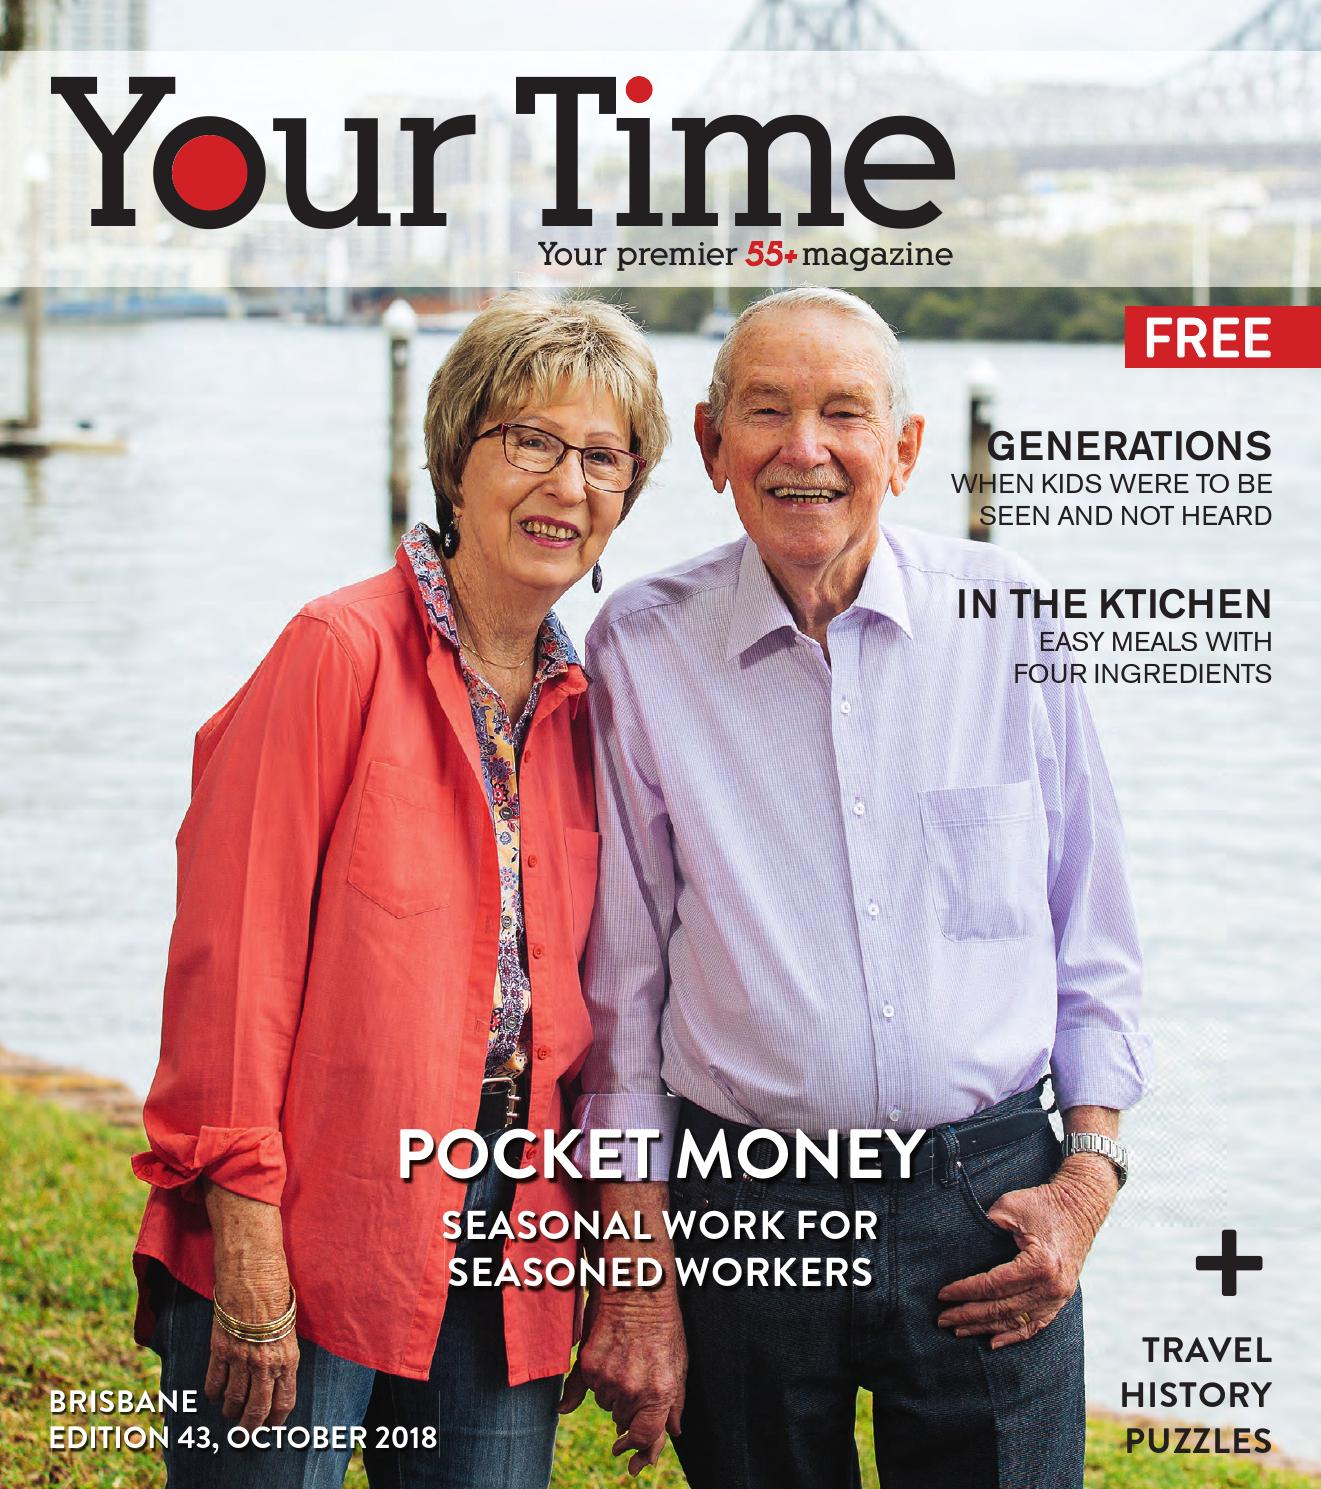 2979a43db11c8 Your Time Magazine Brisbane October 2018 edition by My Weekly Preview -  issuu